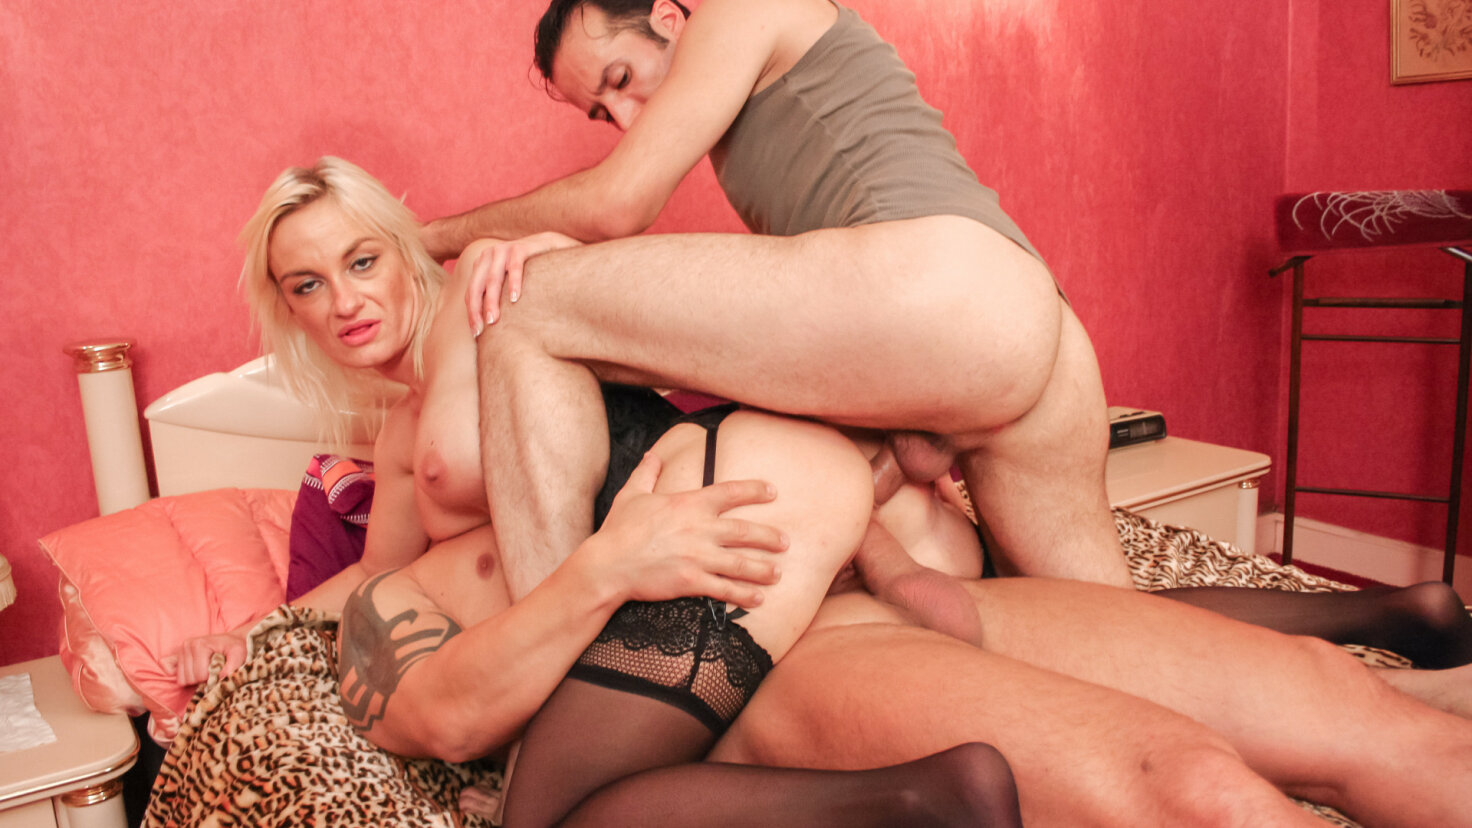 Hot blonde French newbie is sandwiched for double penetration splurge